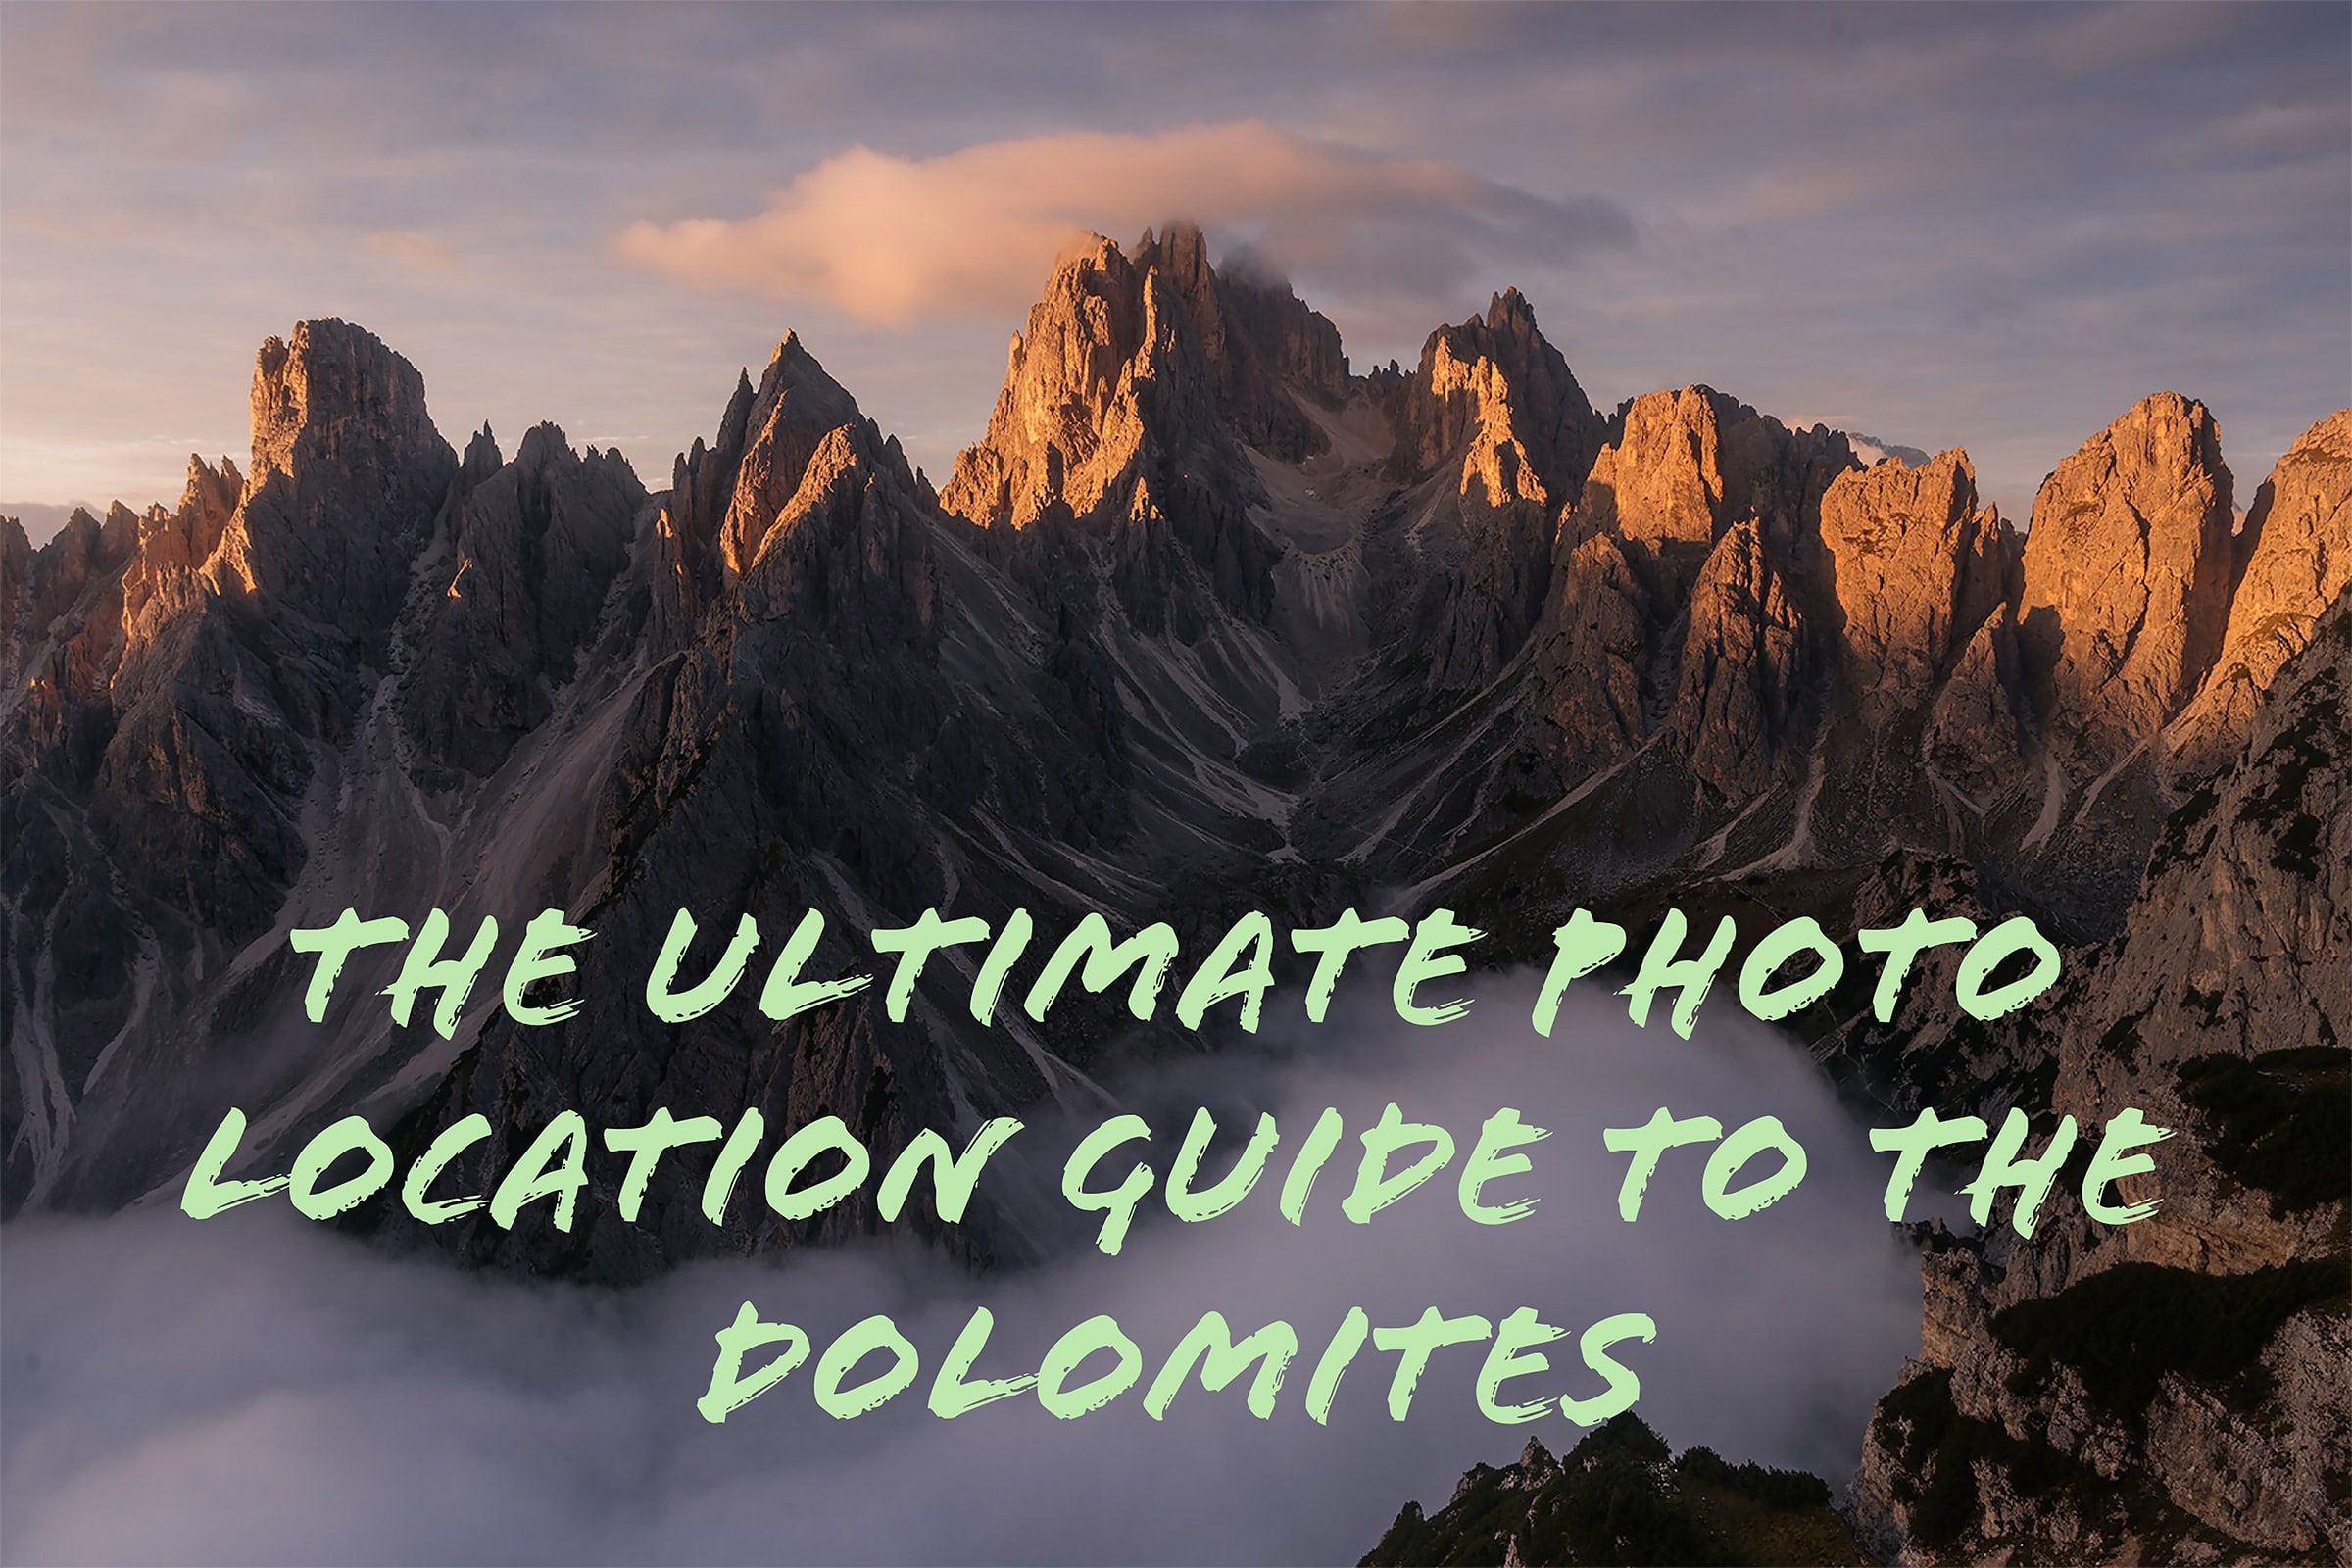 dolomites photo location guide workshop